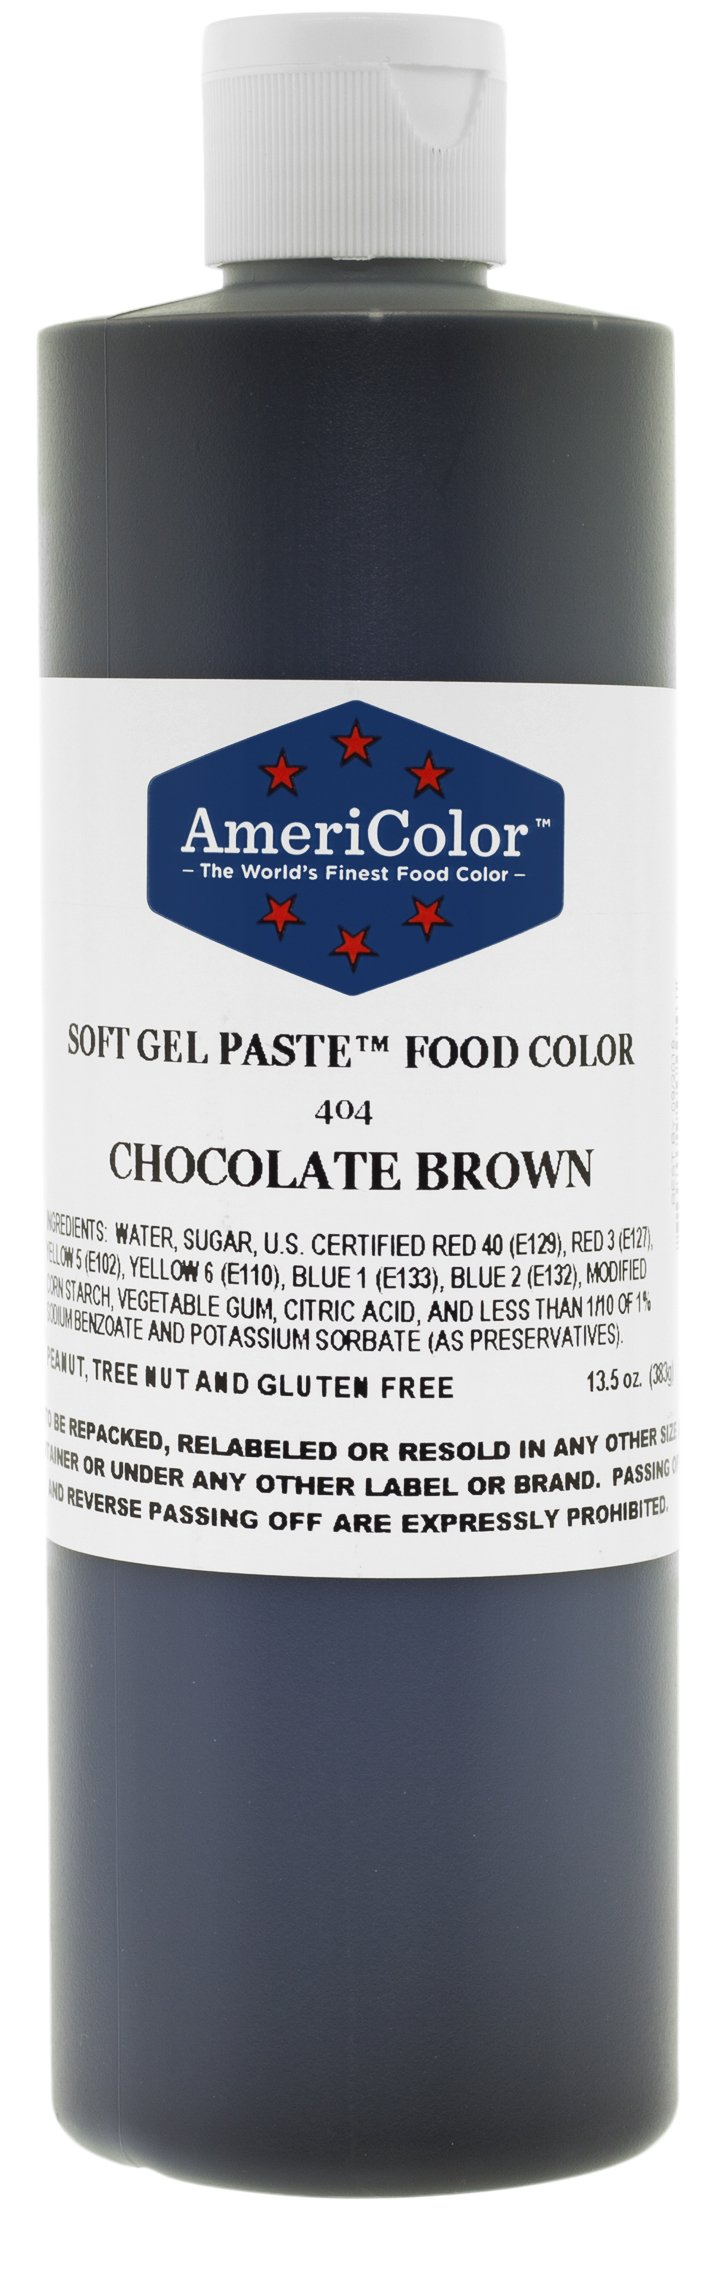 Americolor Soft Gel Paste Food Color, 13.5-Ounce, Chocolate Brown